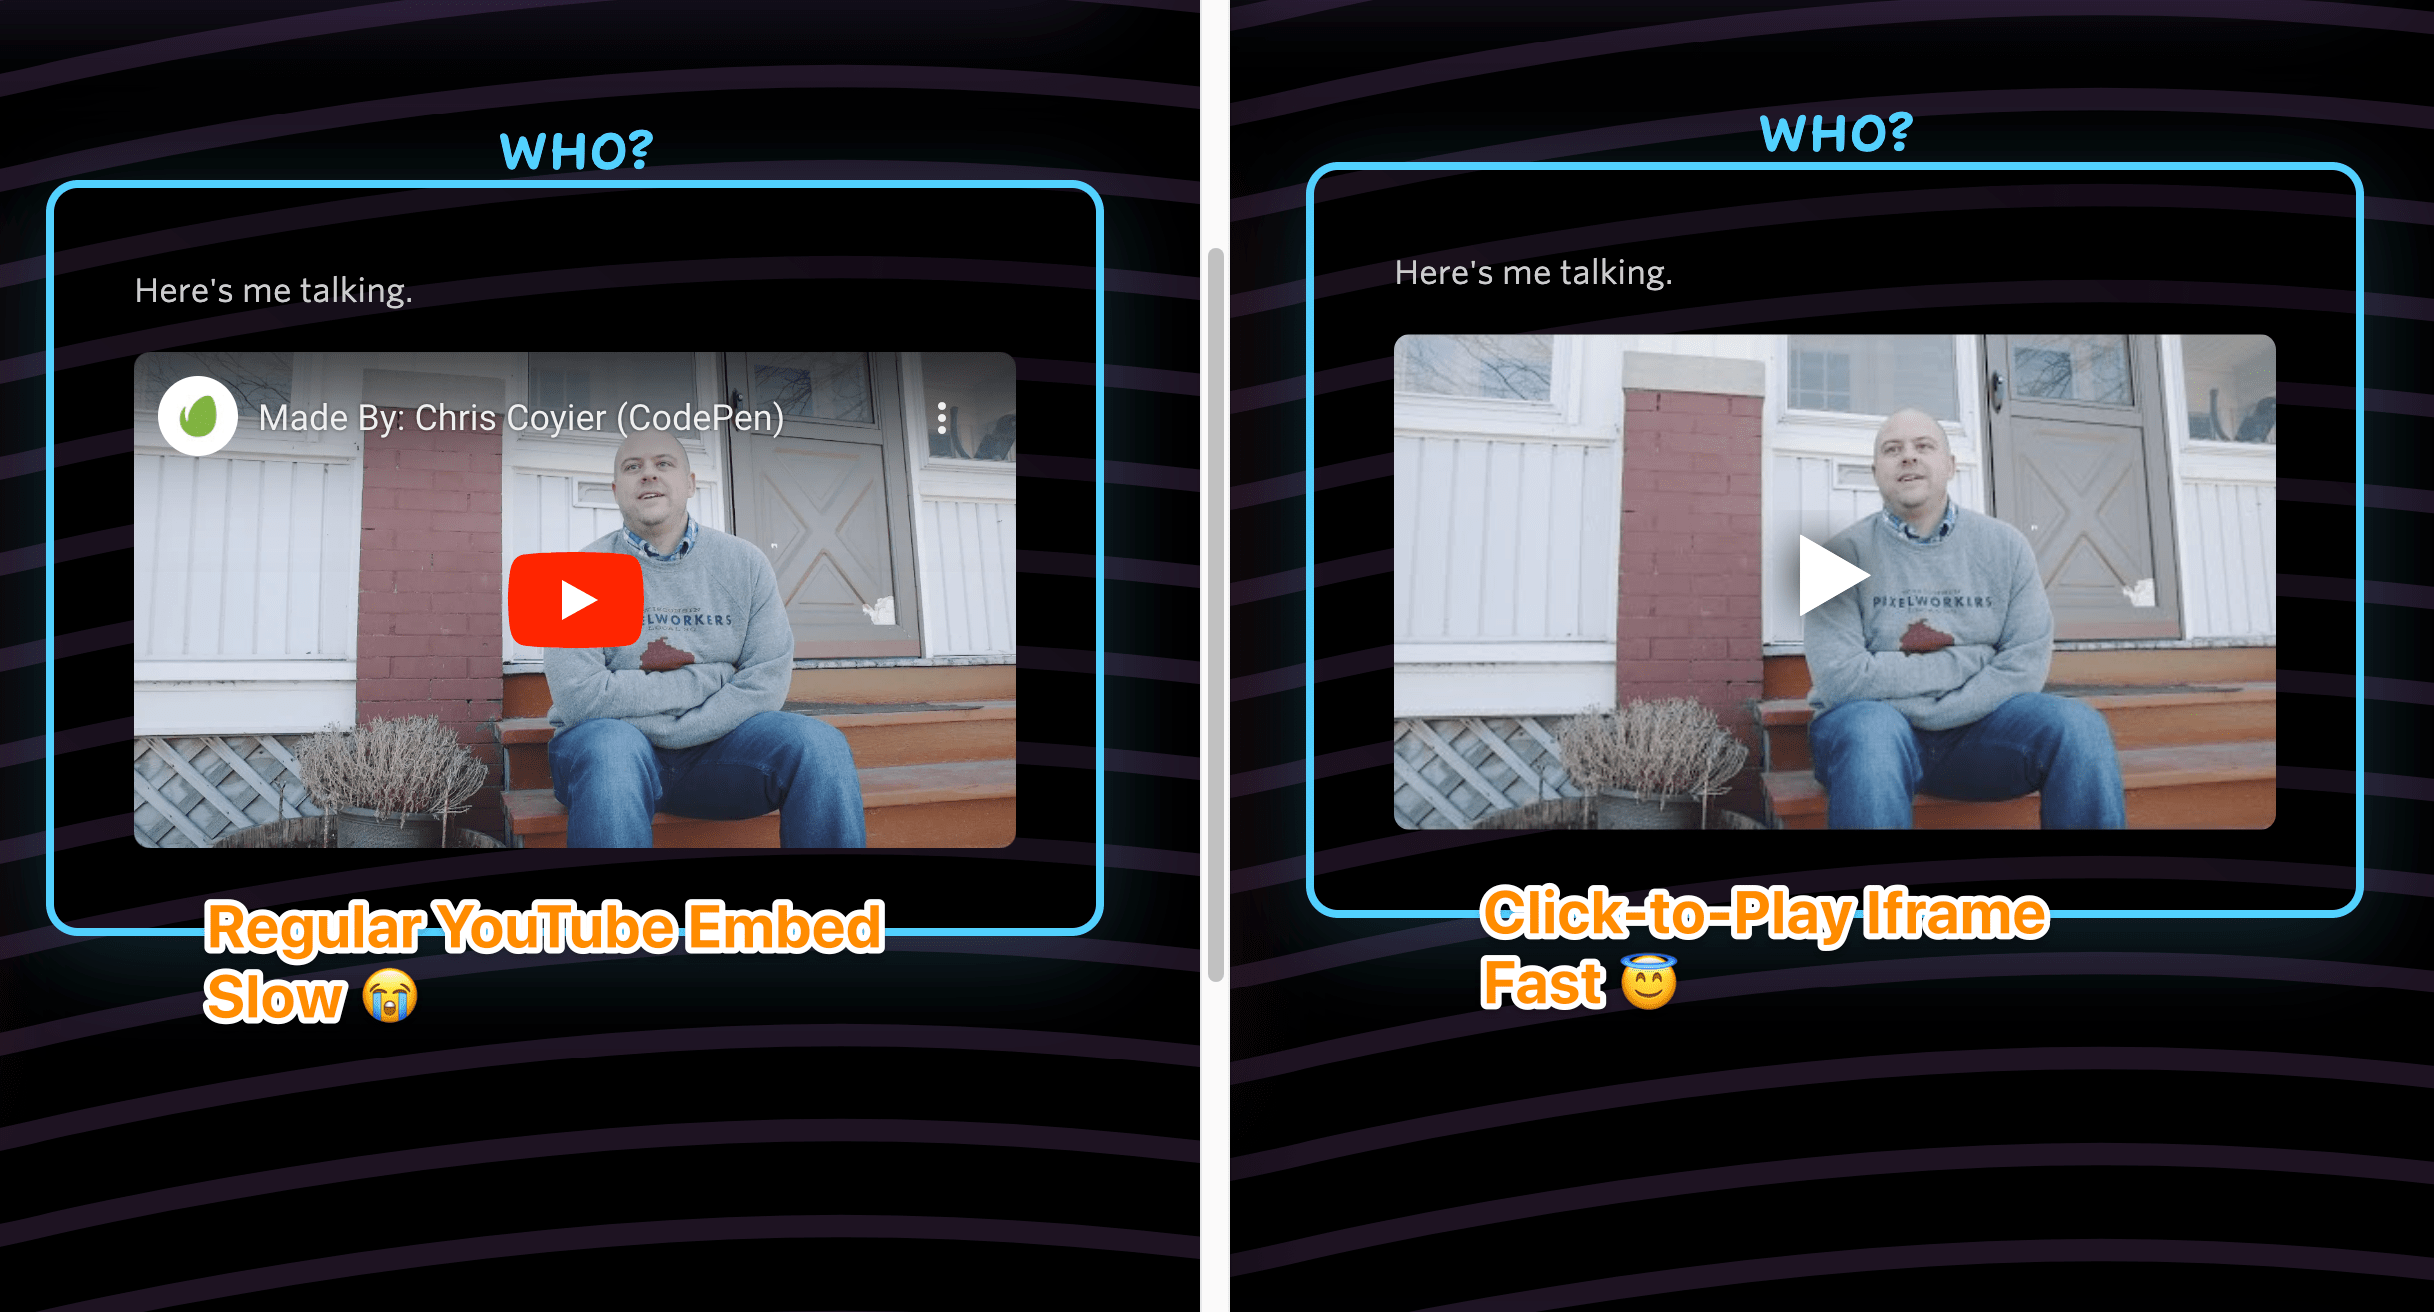 Comparison of a YouTube embed and an iframe with just an image in side. Barely different at all, visually.